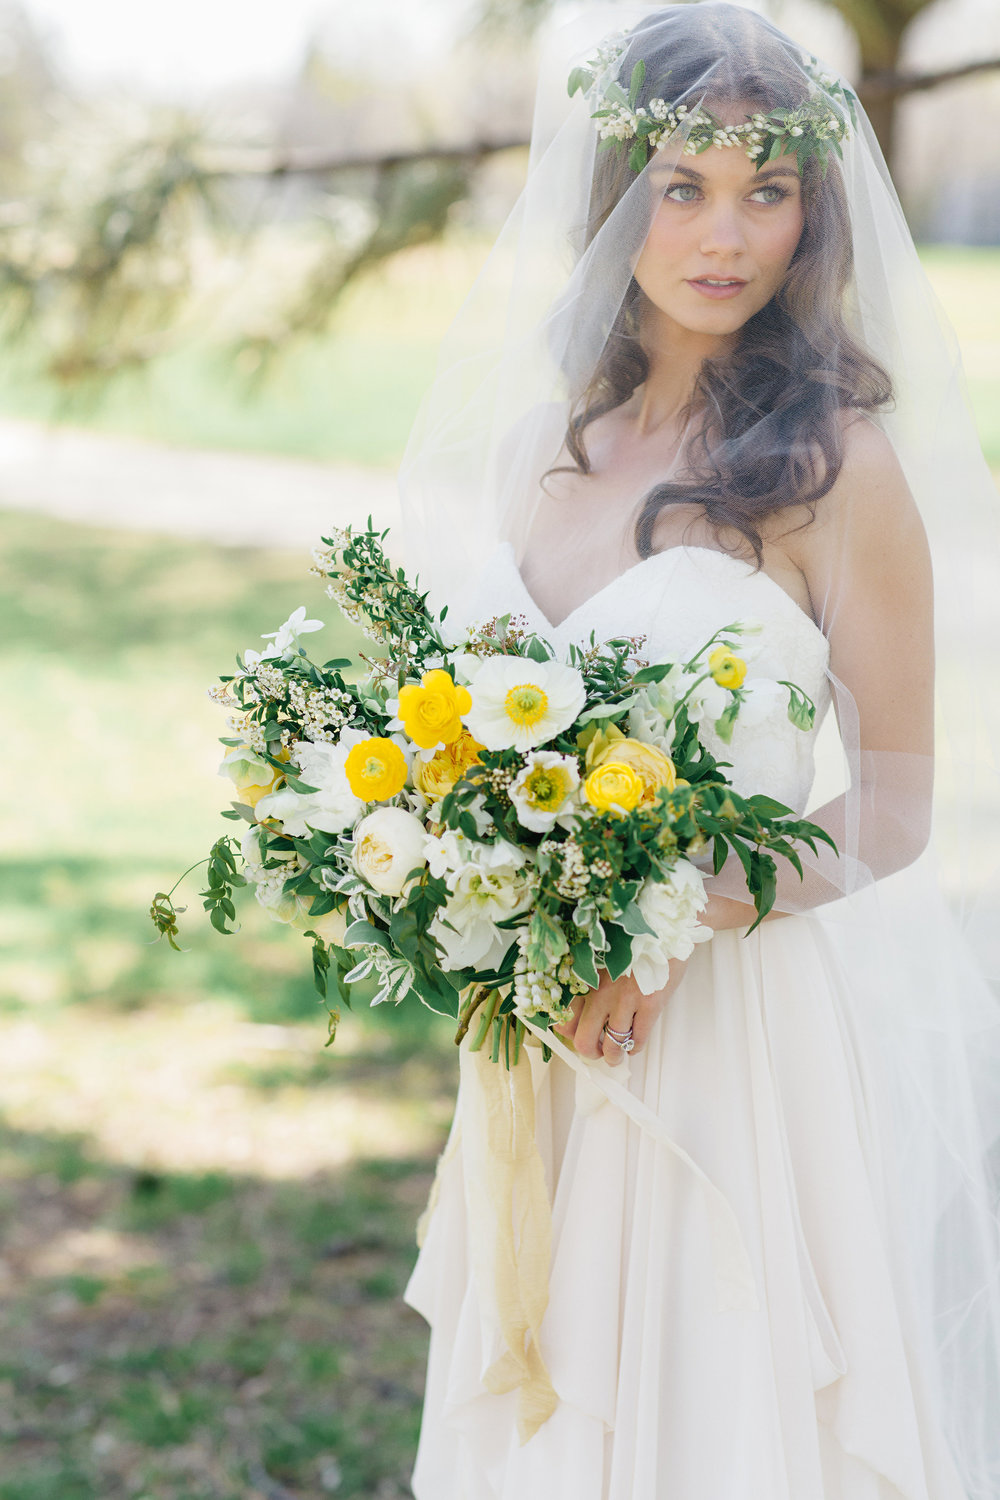 Vendors: Photography: Jody Savage Photography | Videography: Acowsay | Groomswear: Savvy Formalwear | Dress: Natalie by Truvelle, A and B Bridal Shop | Makeup: Julie Swenson Beauty | Hair: Teanna Moye Artistry | Venue: Solar Arts Chowgirls | Rentals & Design: On Solid Ground Vintage Rentals | Floral Design: Studio Fleurette | Florals: Fifty Flowers | Cake Topper, Custom Lettering, Escort+Place Cards: Splendid Supply Co. | Cake Stands, Guest Book + Invites: Minted| Food + Cake: Chow Girl Catering